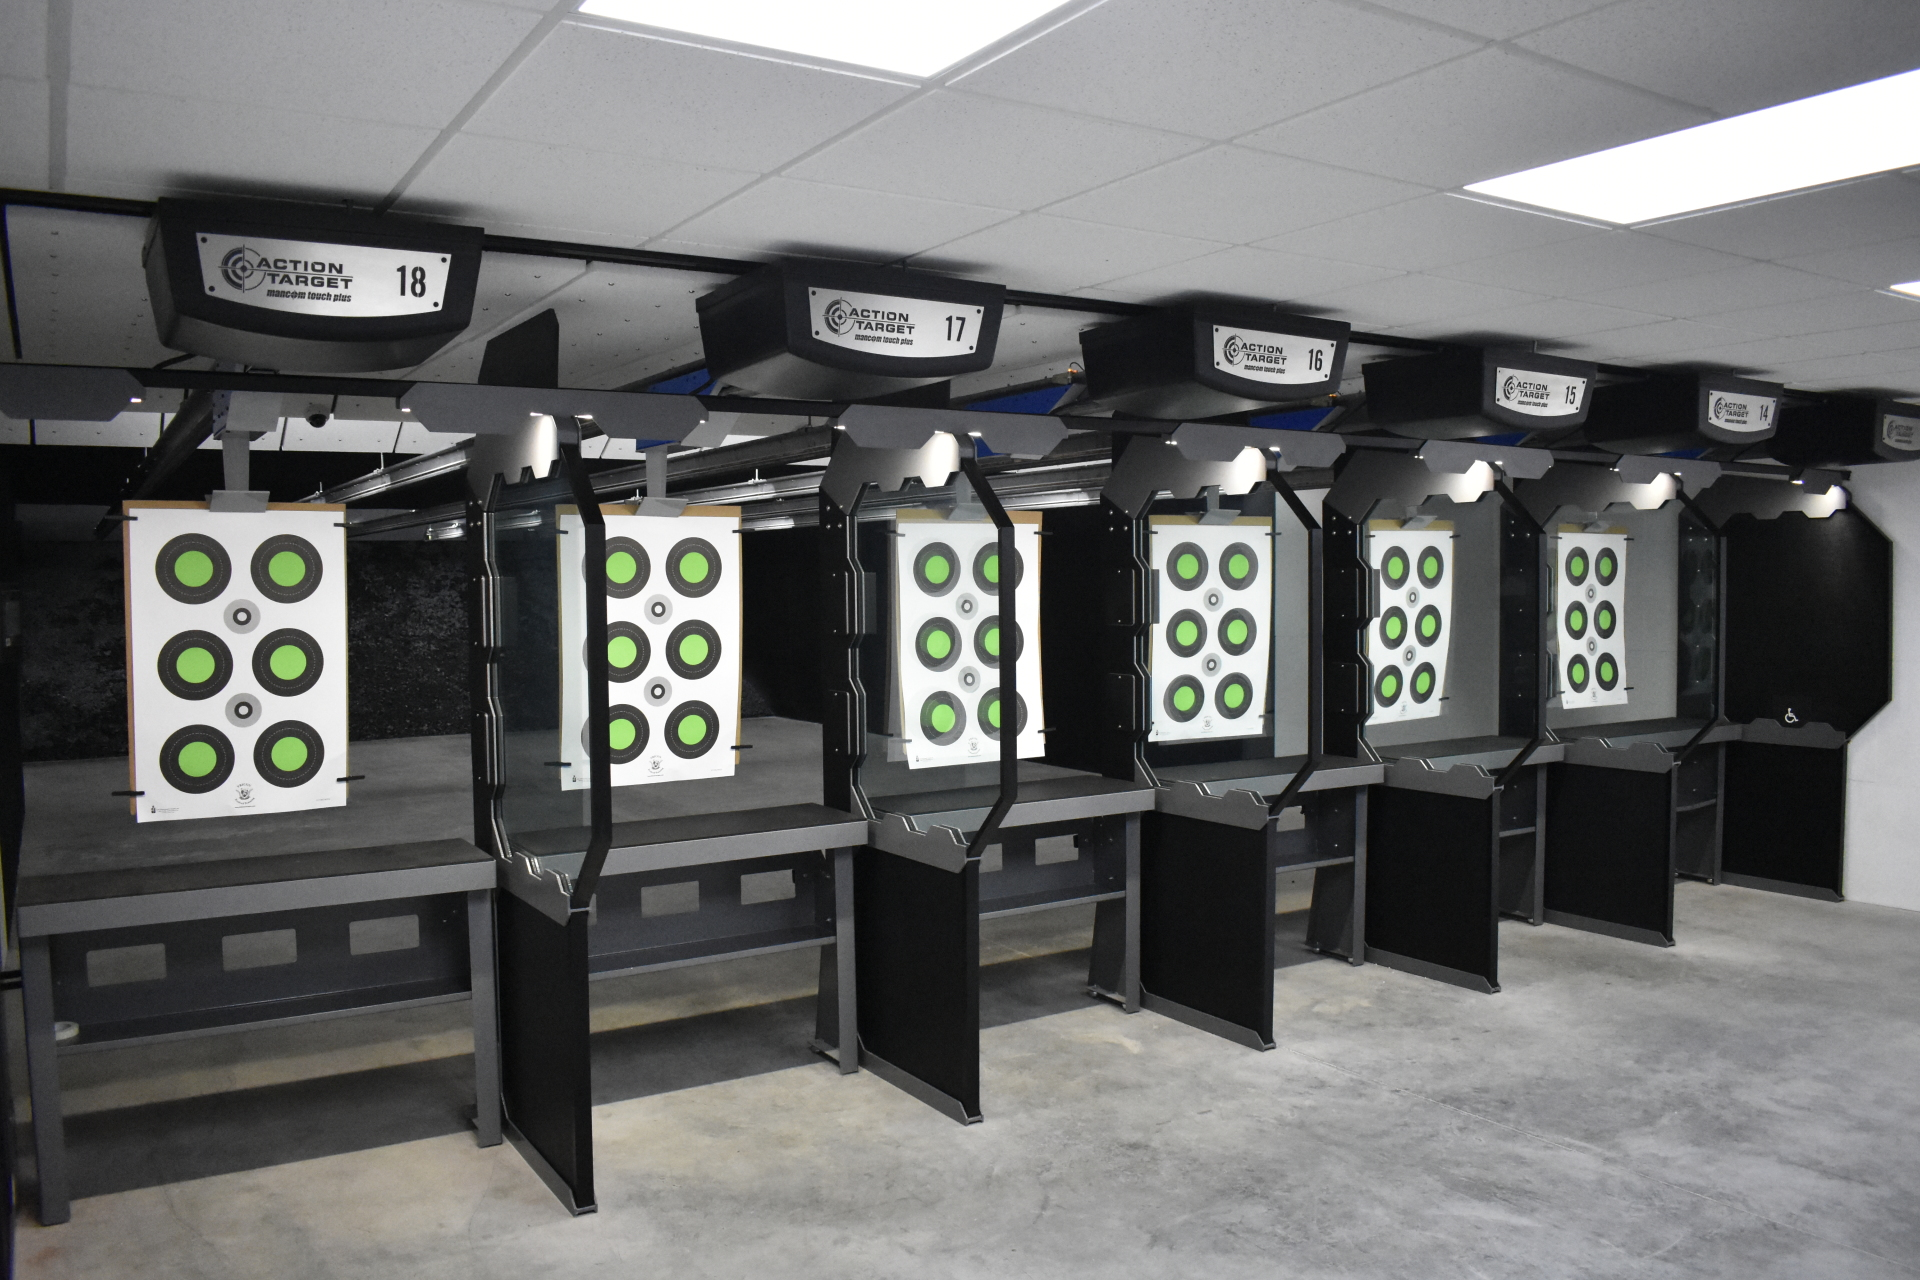 Shooting Range in Warminster, PA